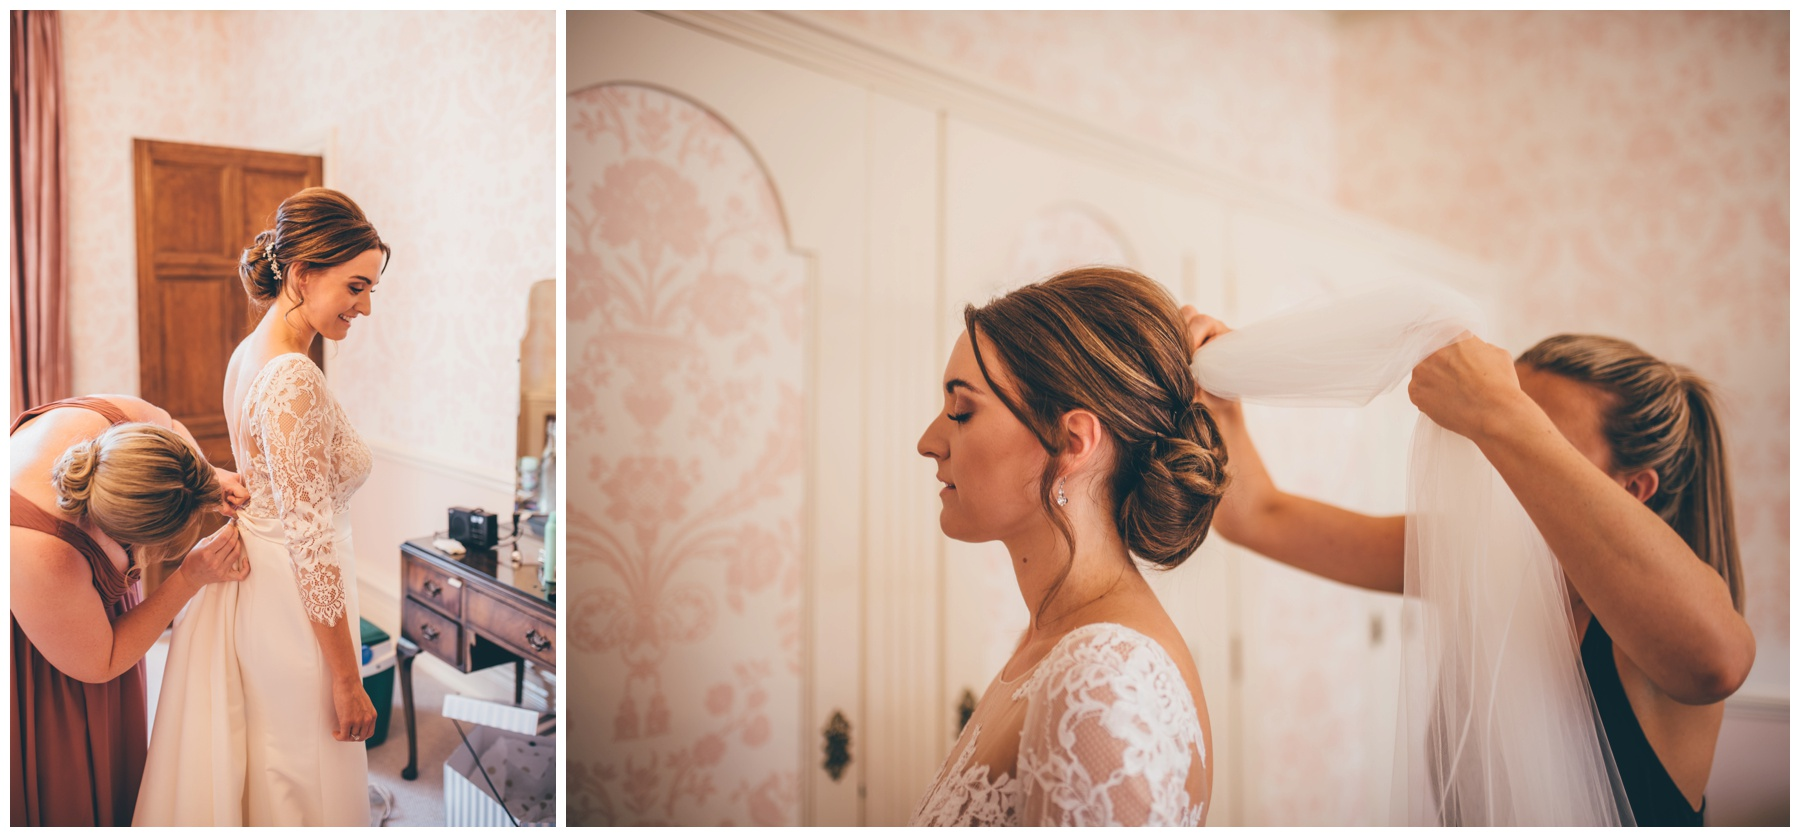 Beautiful bride gets ready before walking down the aisle at Tilstone House.